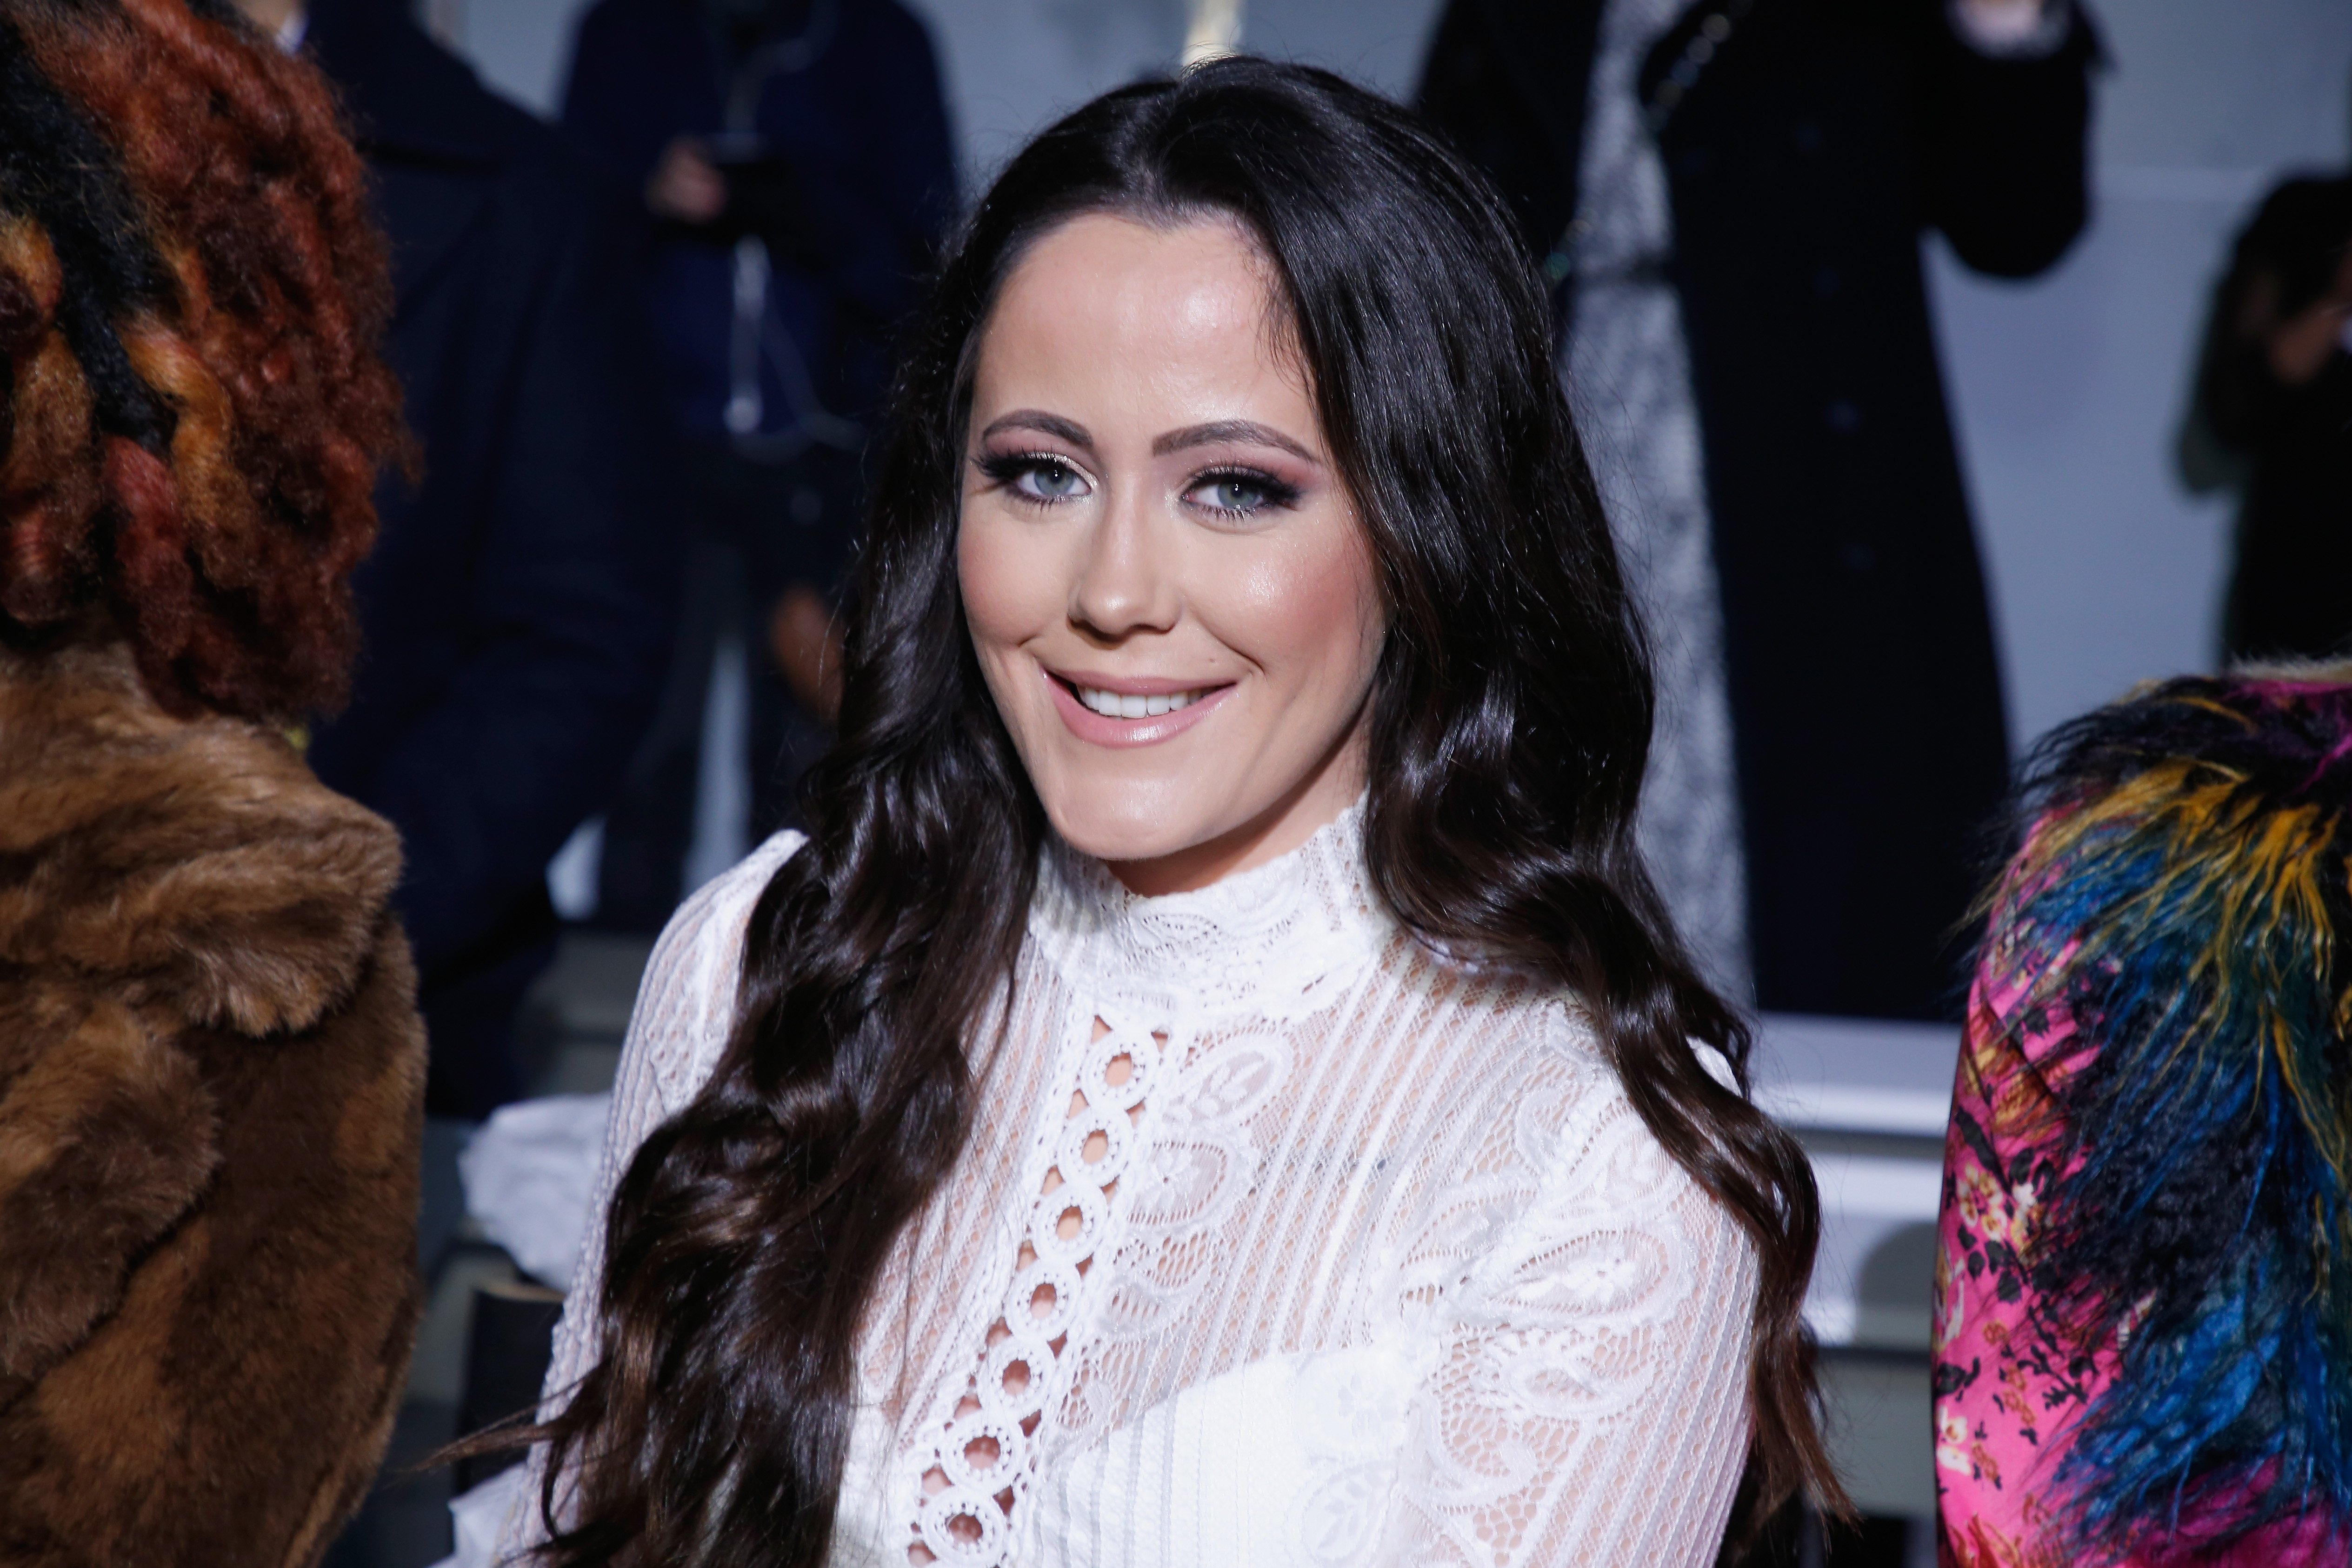 Jenelle Evans attends the Indonesian Diversity FW19 Collections: 2Madison Avenue at New York Fashion Week on February 7, 2019 in New York City | Photo: Getty Images